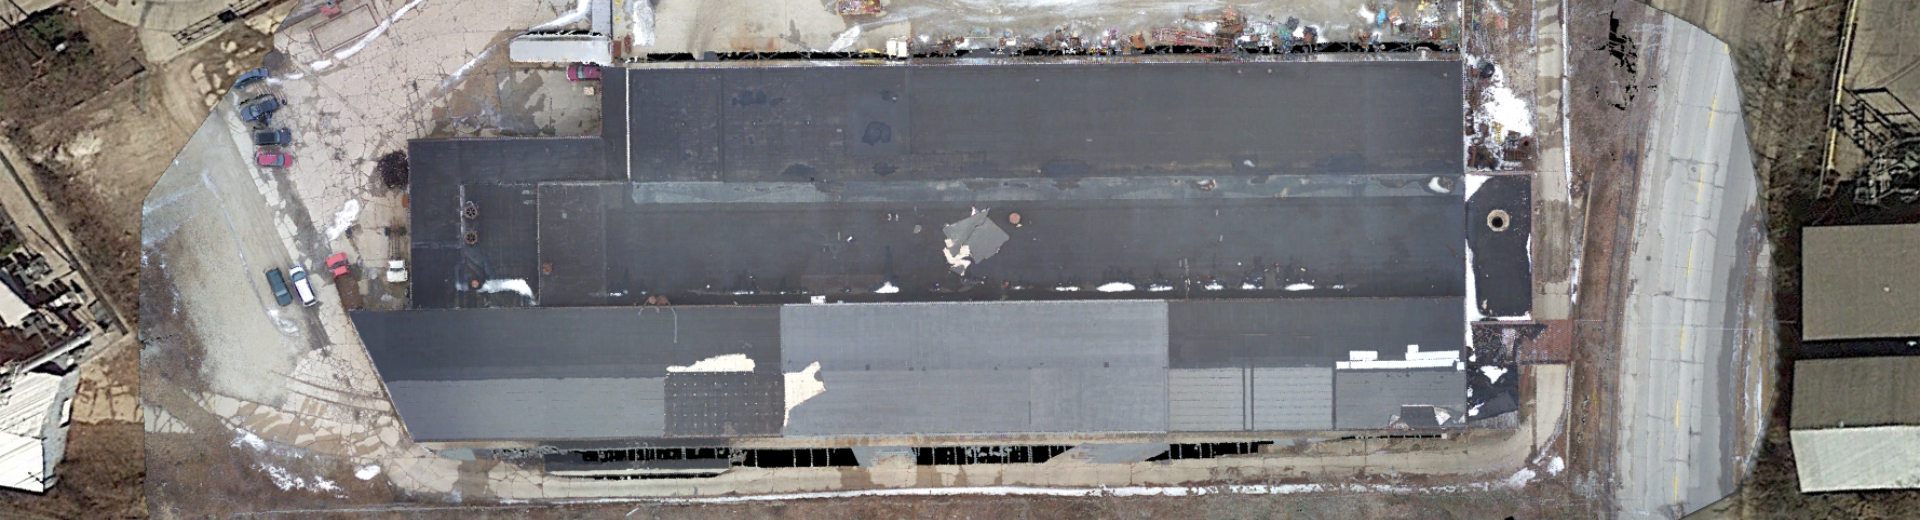 Drone Imagery of Roof